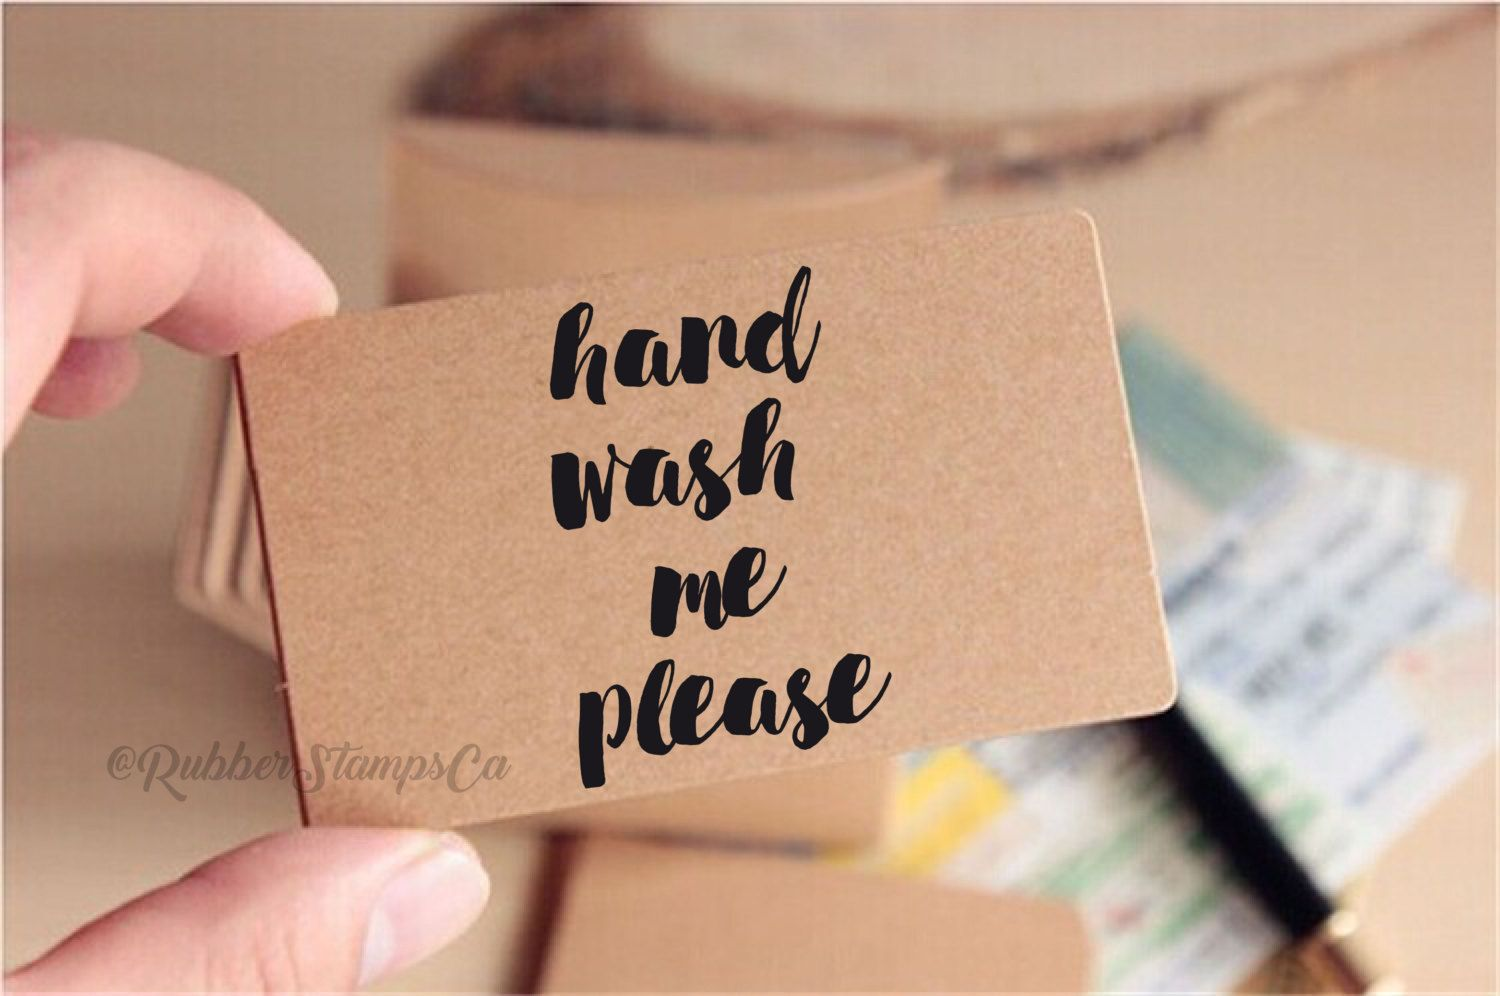 Hand Wash Me Please Rubber Stamp Custom Branding Clothing Product Fashion Label By RubberStampsCa On Etsy